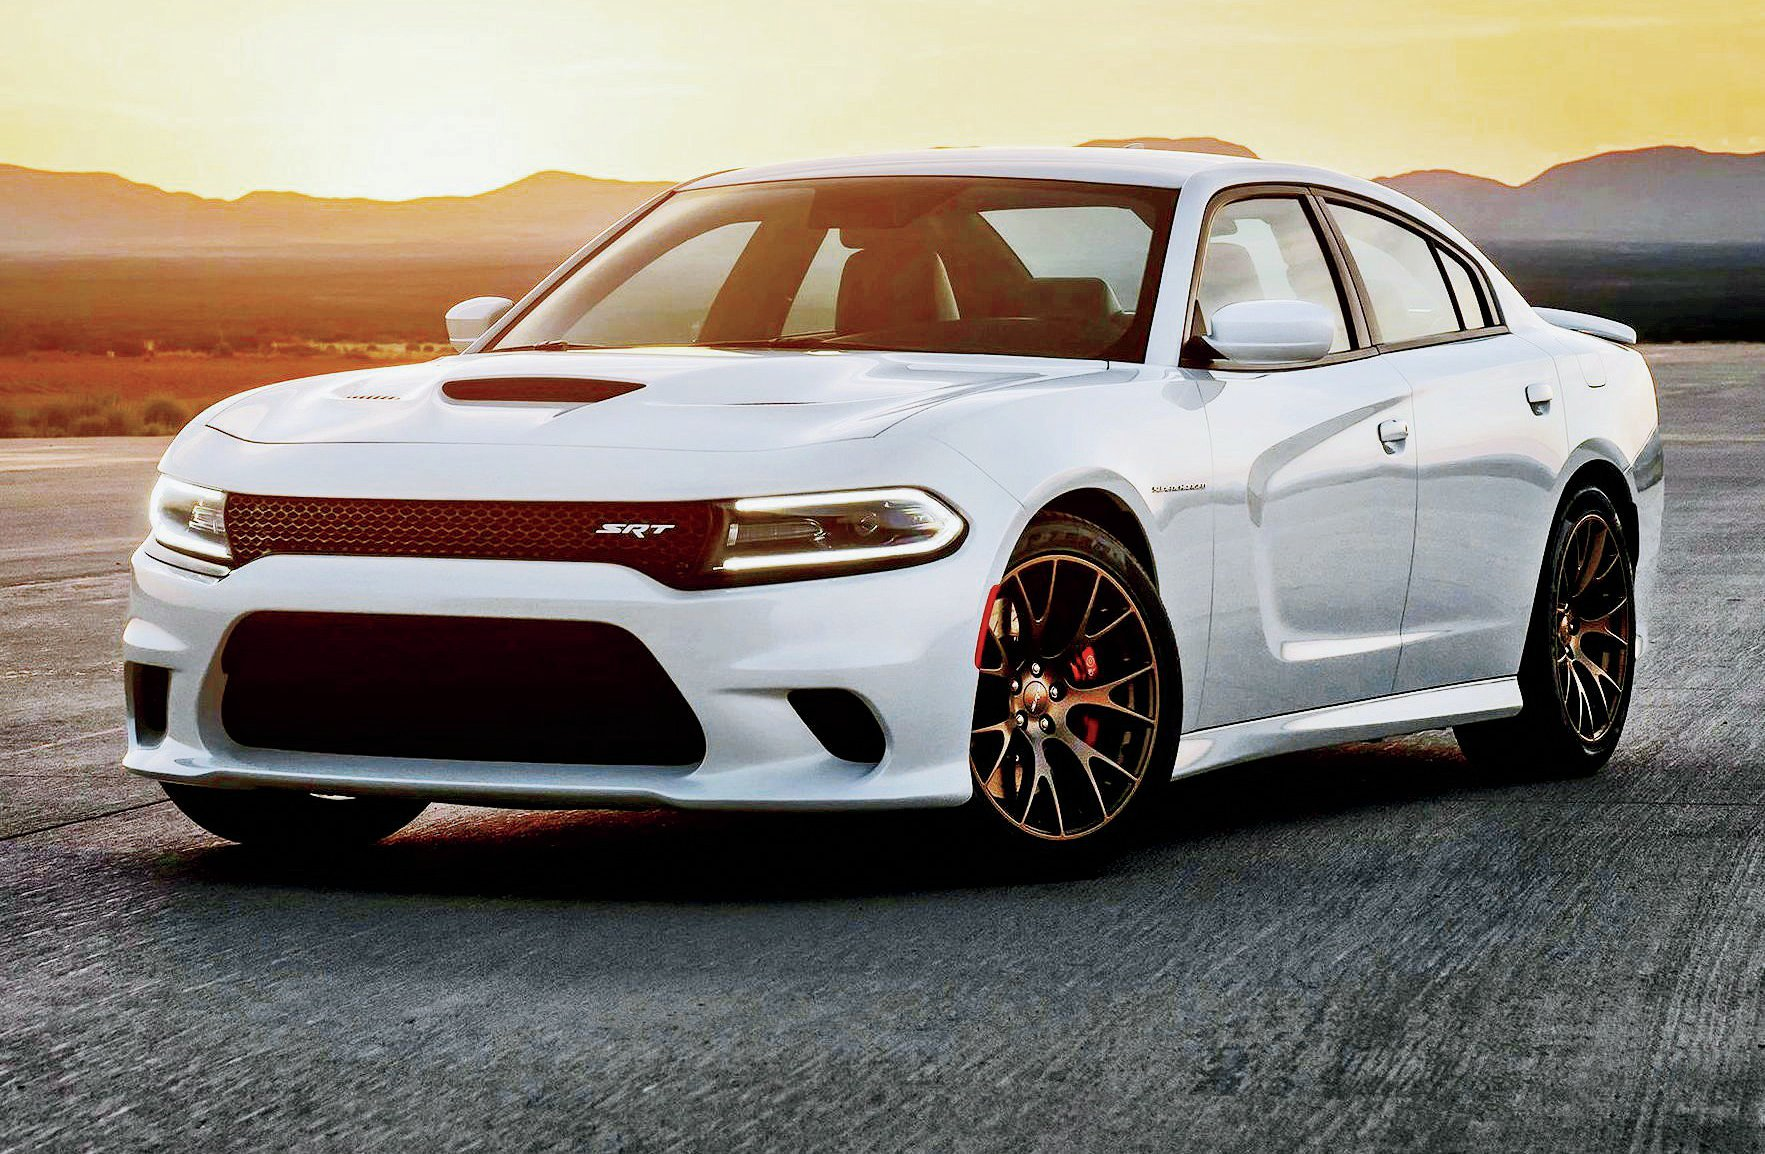 Introducing the world's most powerful regular production four-door sedan: The '15 Dodge SRT Hellcat Charger. Its top speed of 204 mph is only limited by aerodynamics and gearing. The 0-100-0 benchmark is accomplished in under 13 seconds. Price on this e-ticket ride will land right around $63,000.